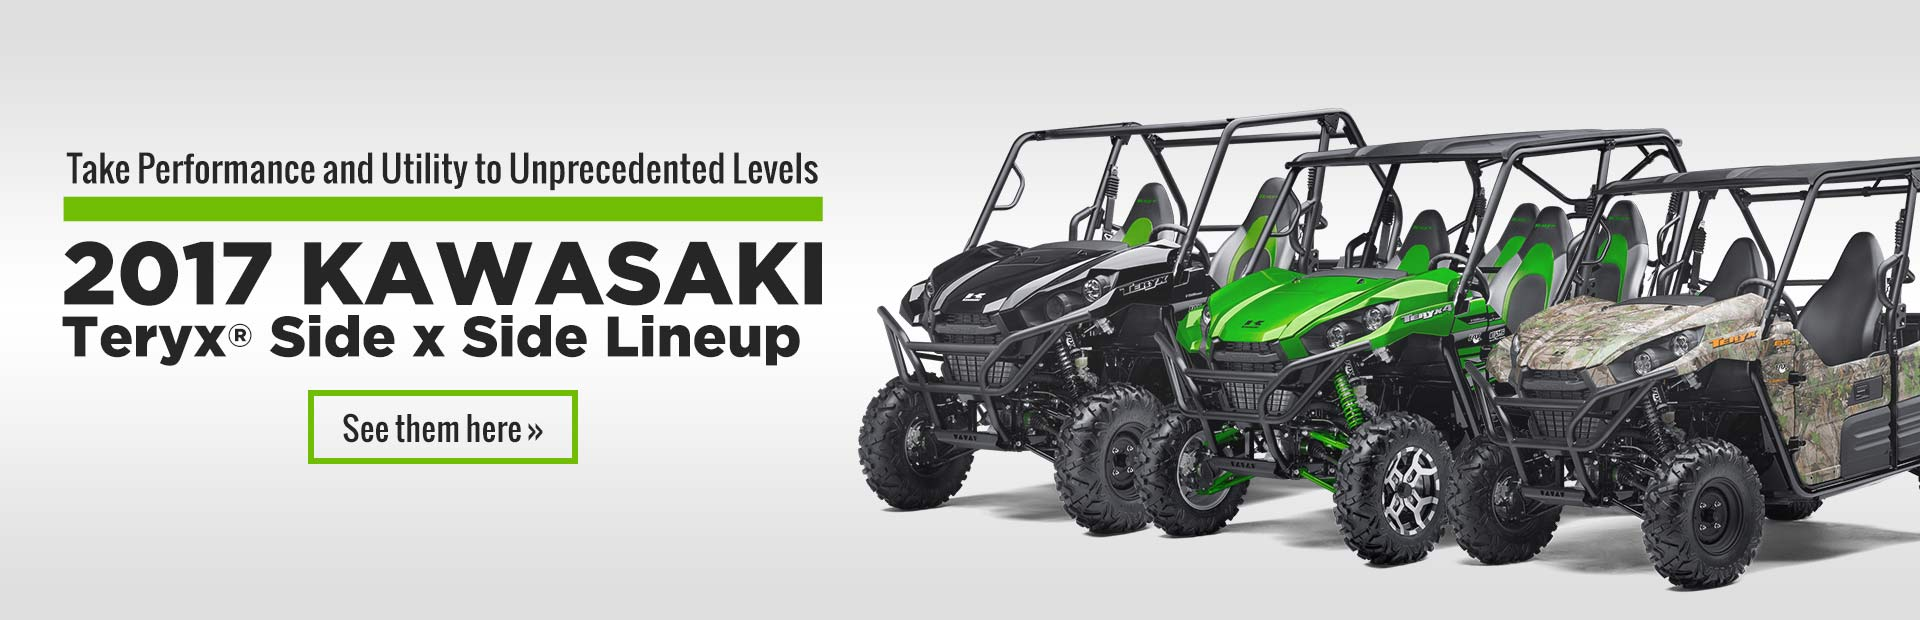 Click here to view the 2017 Kawasaki Teryx® side x side lineup.